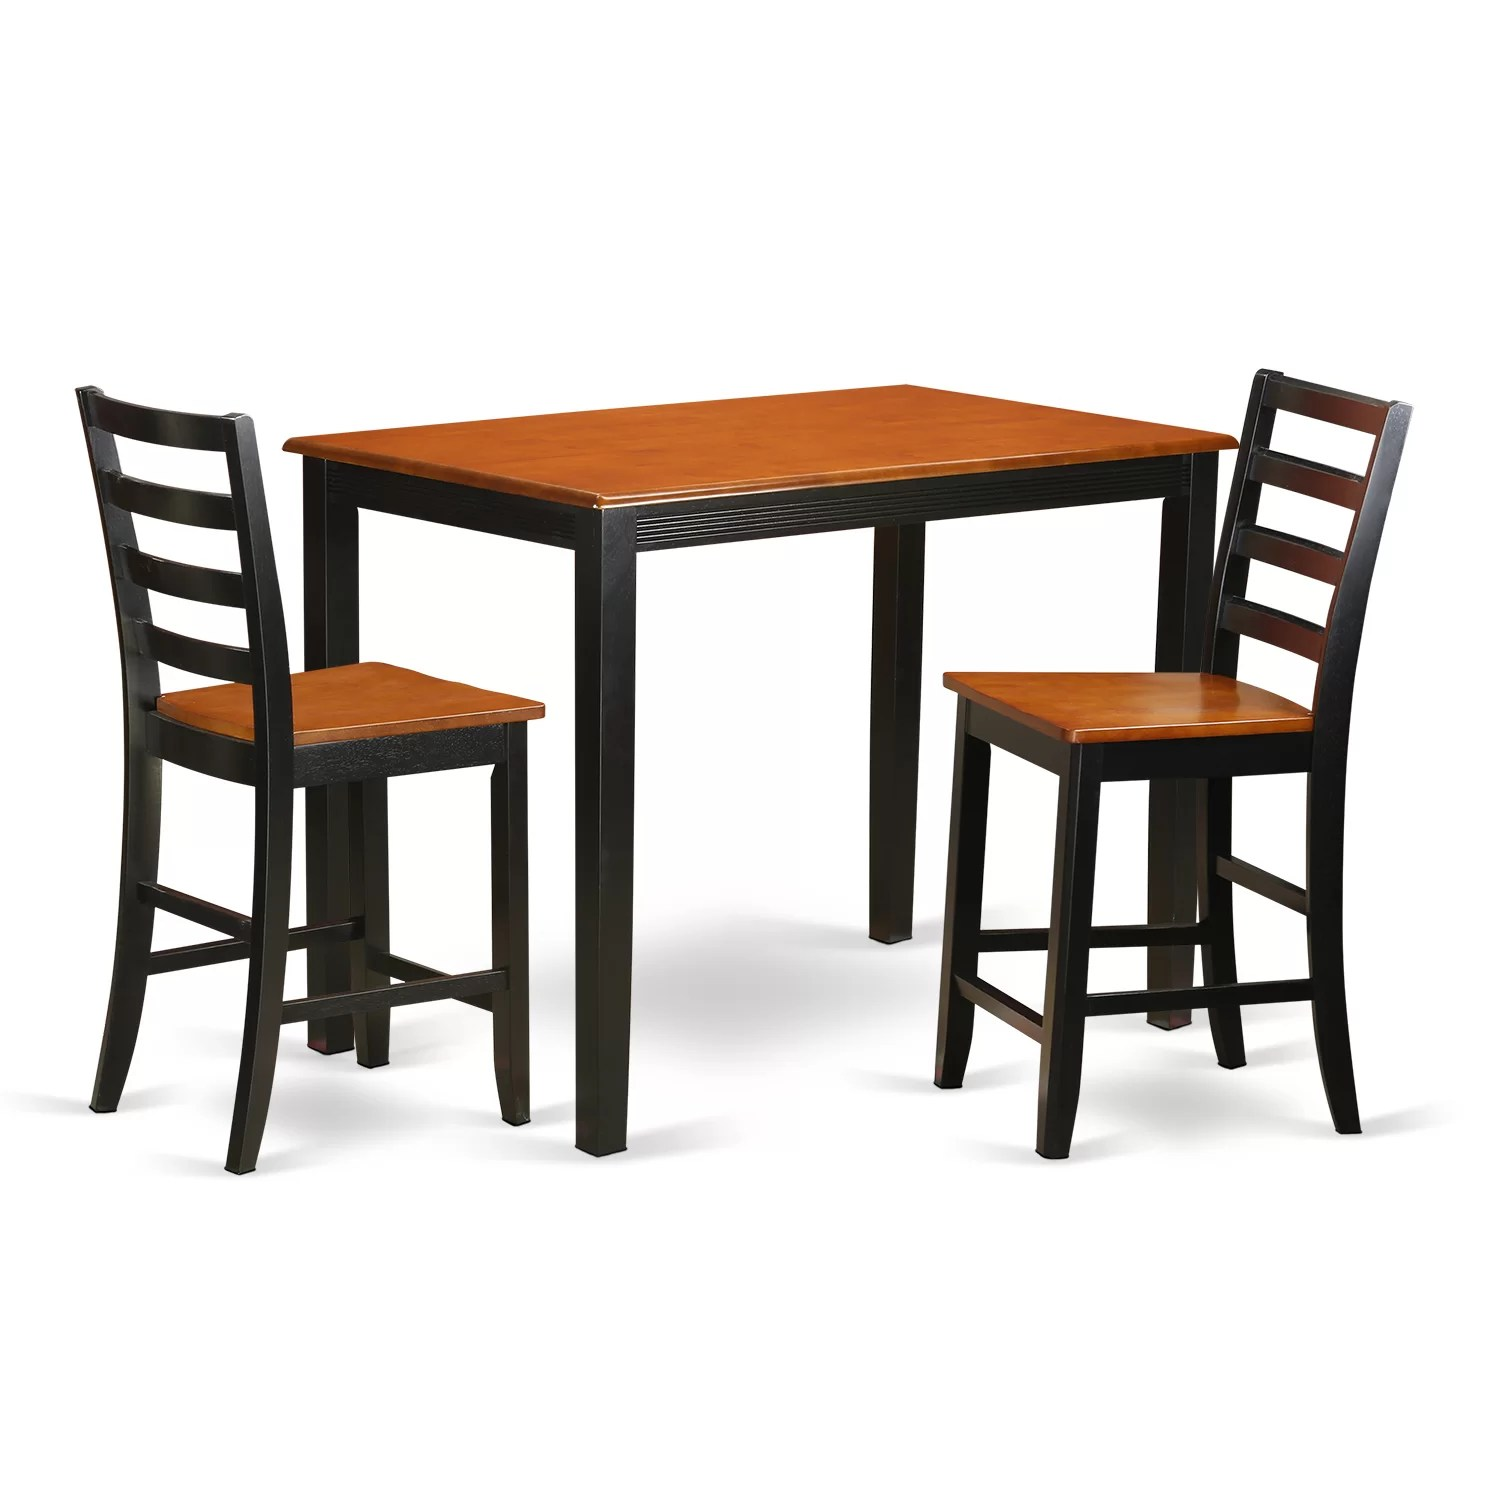 high bar table and chair set wooden office chairs on wheels importers yarmouth 3 piece counter height pub